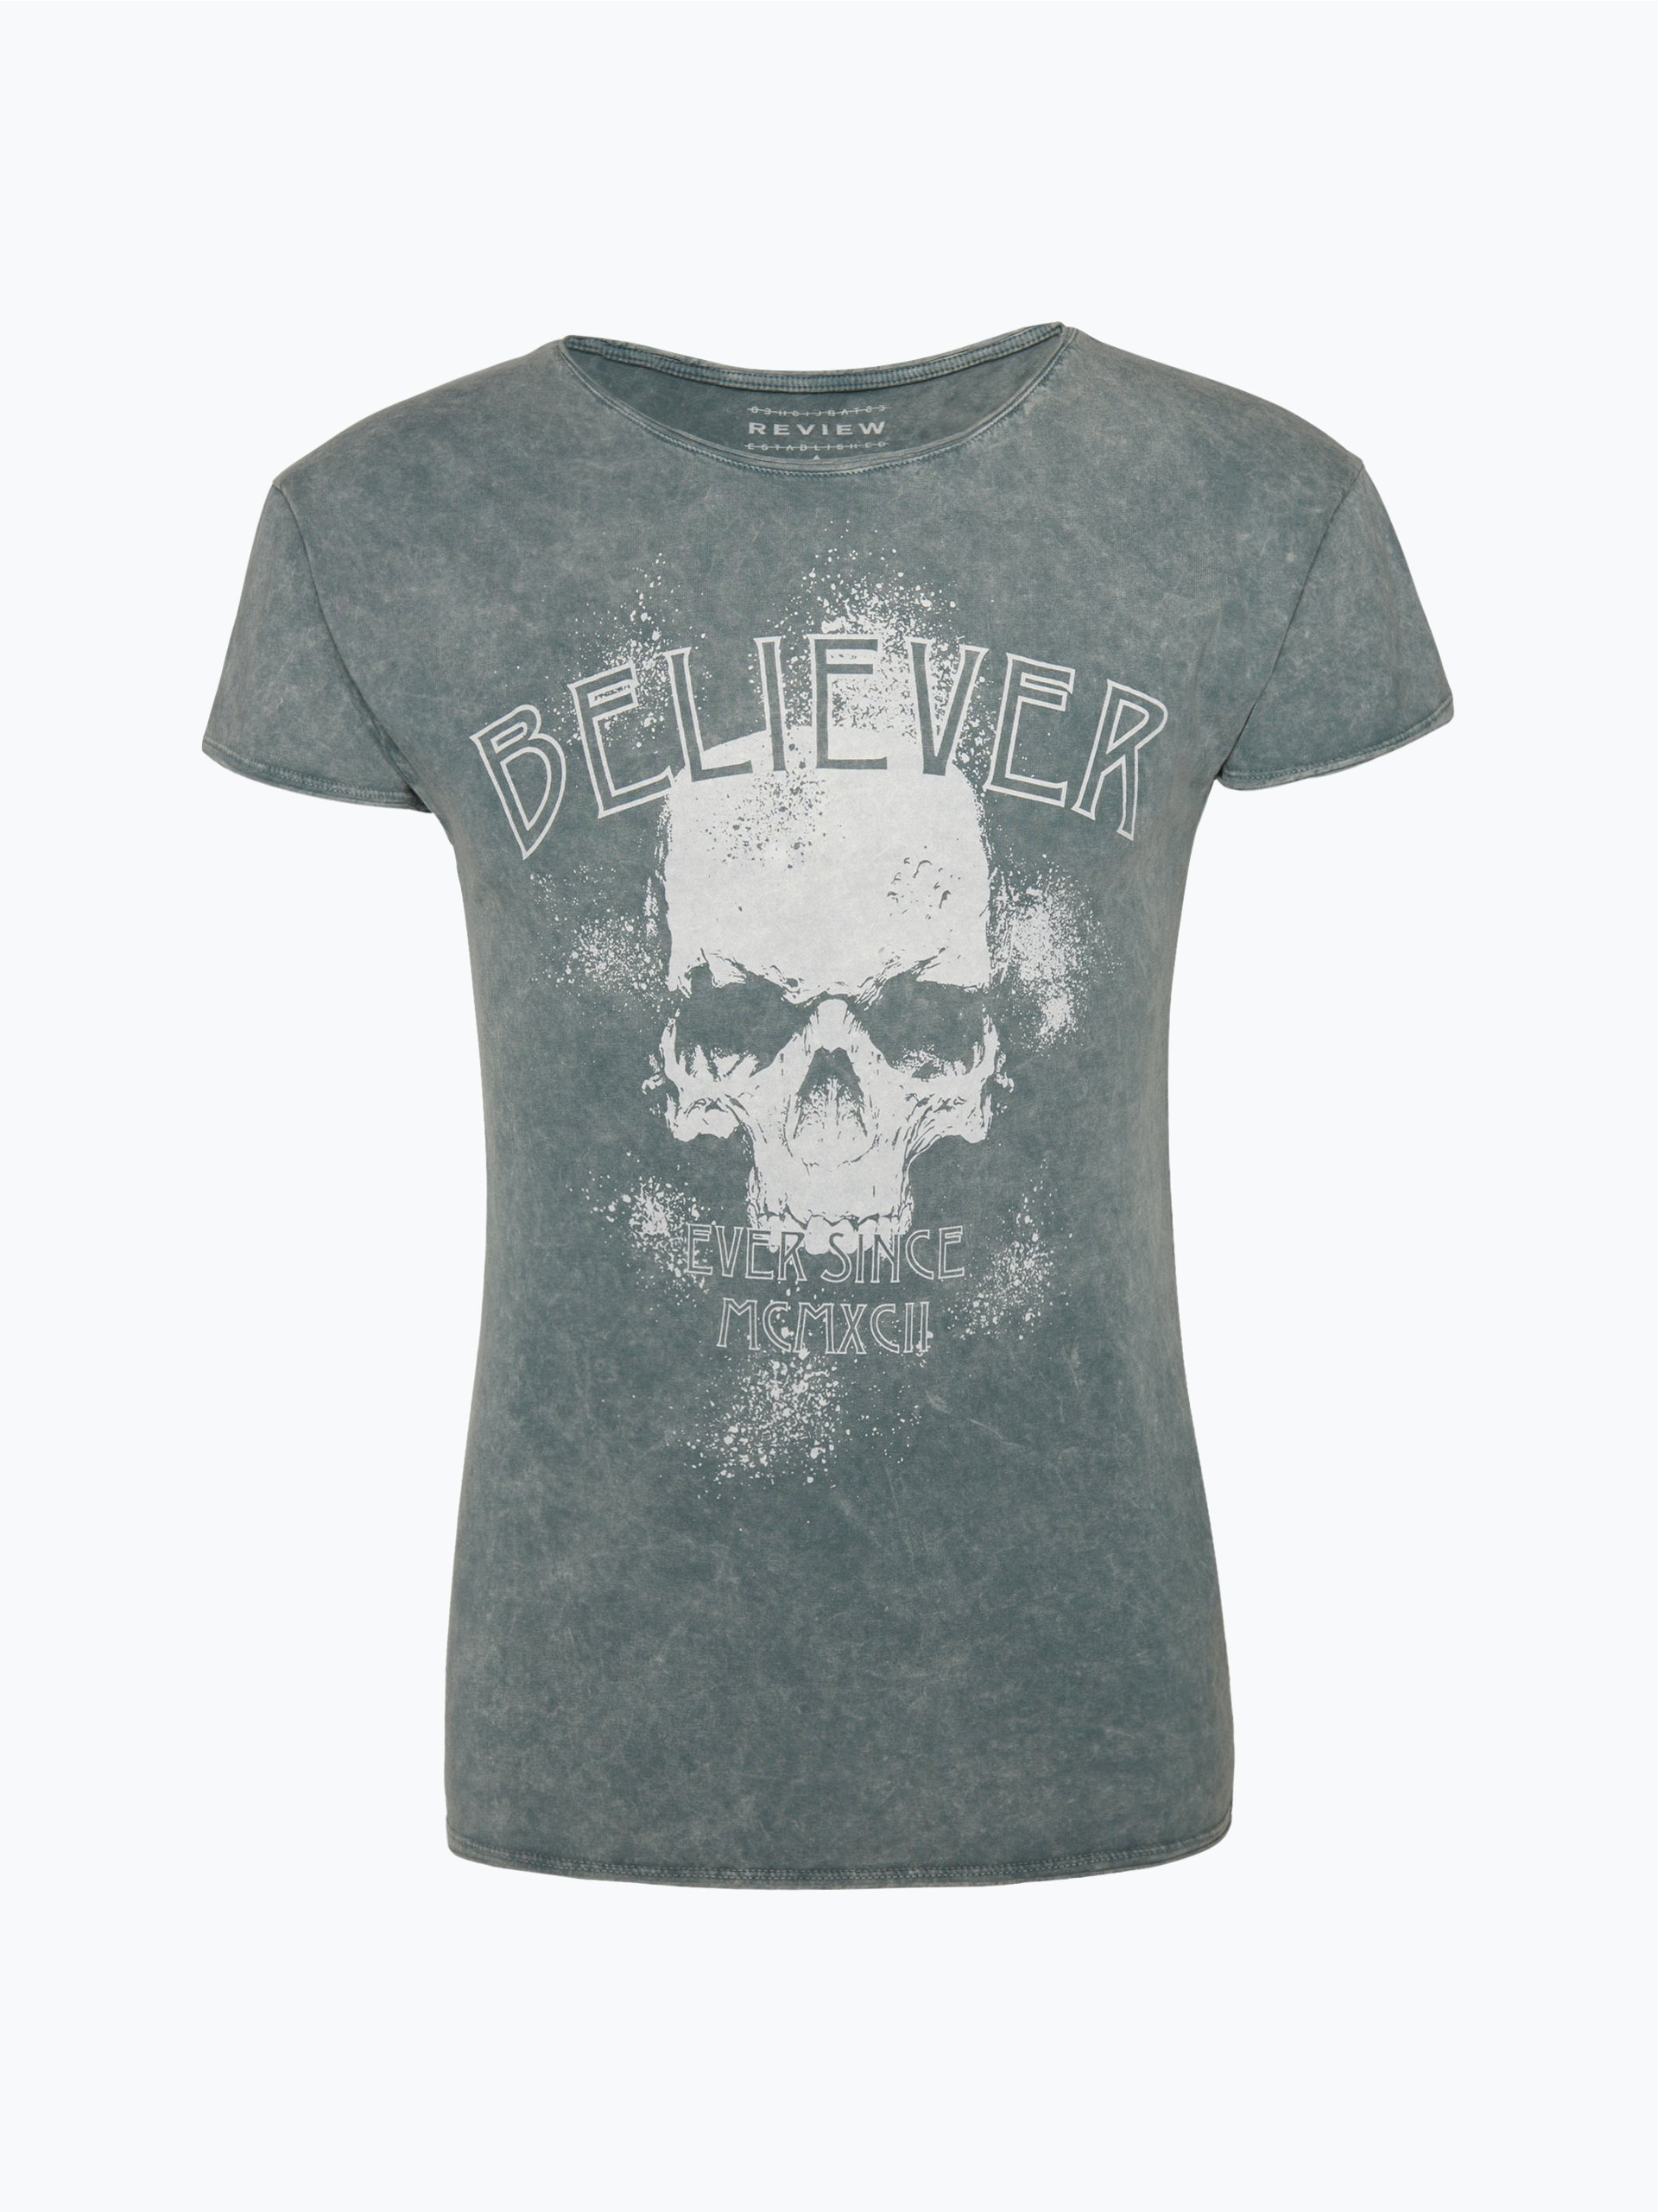 Review Herren T-Shirt